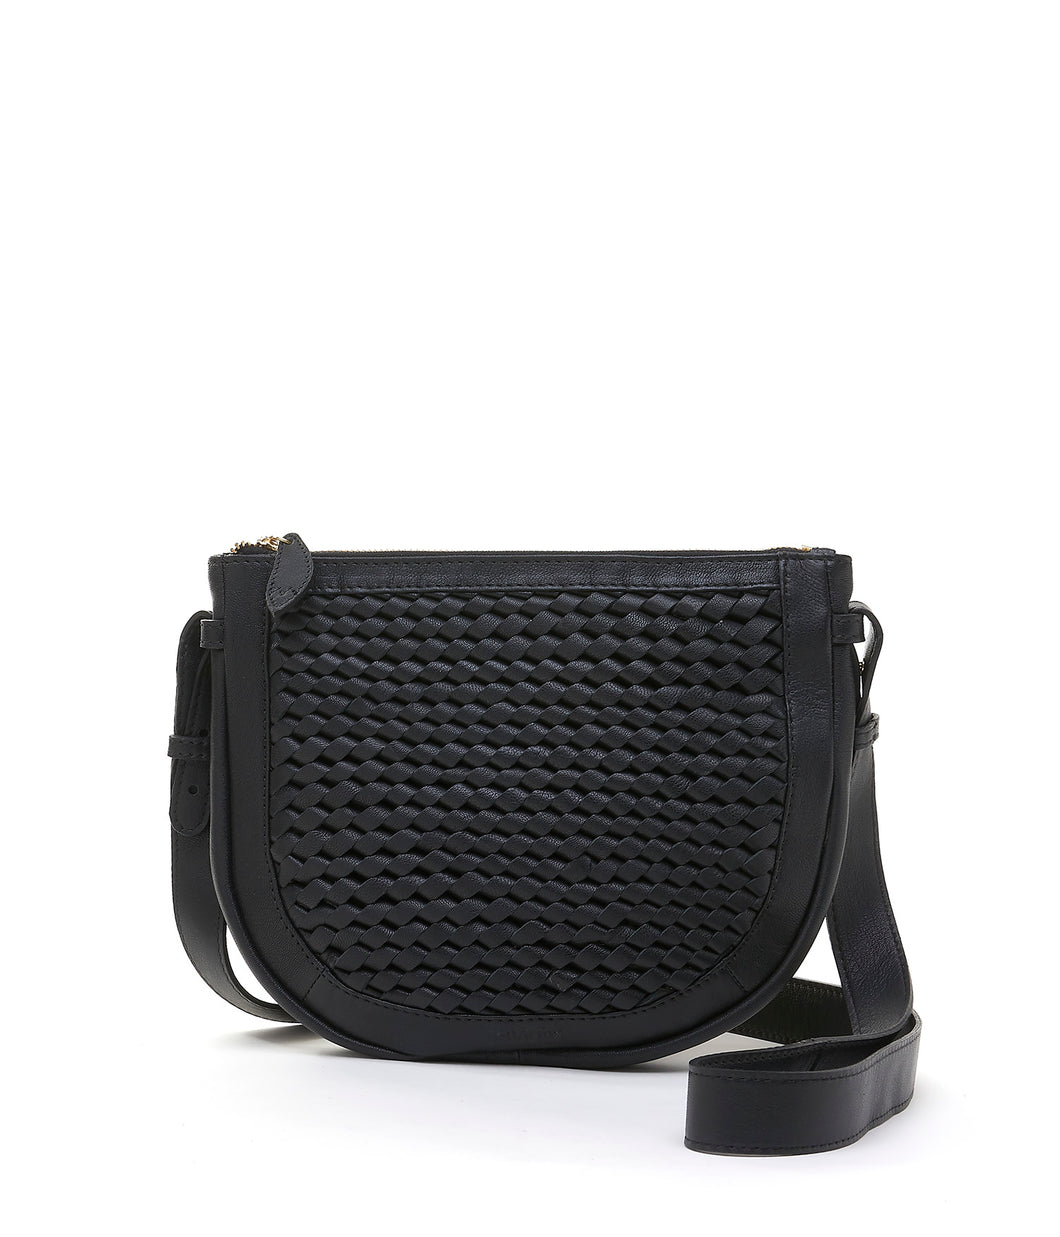 Bell & Fox Caro Leather Cross Body Bag- Black